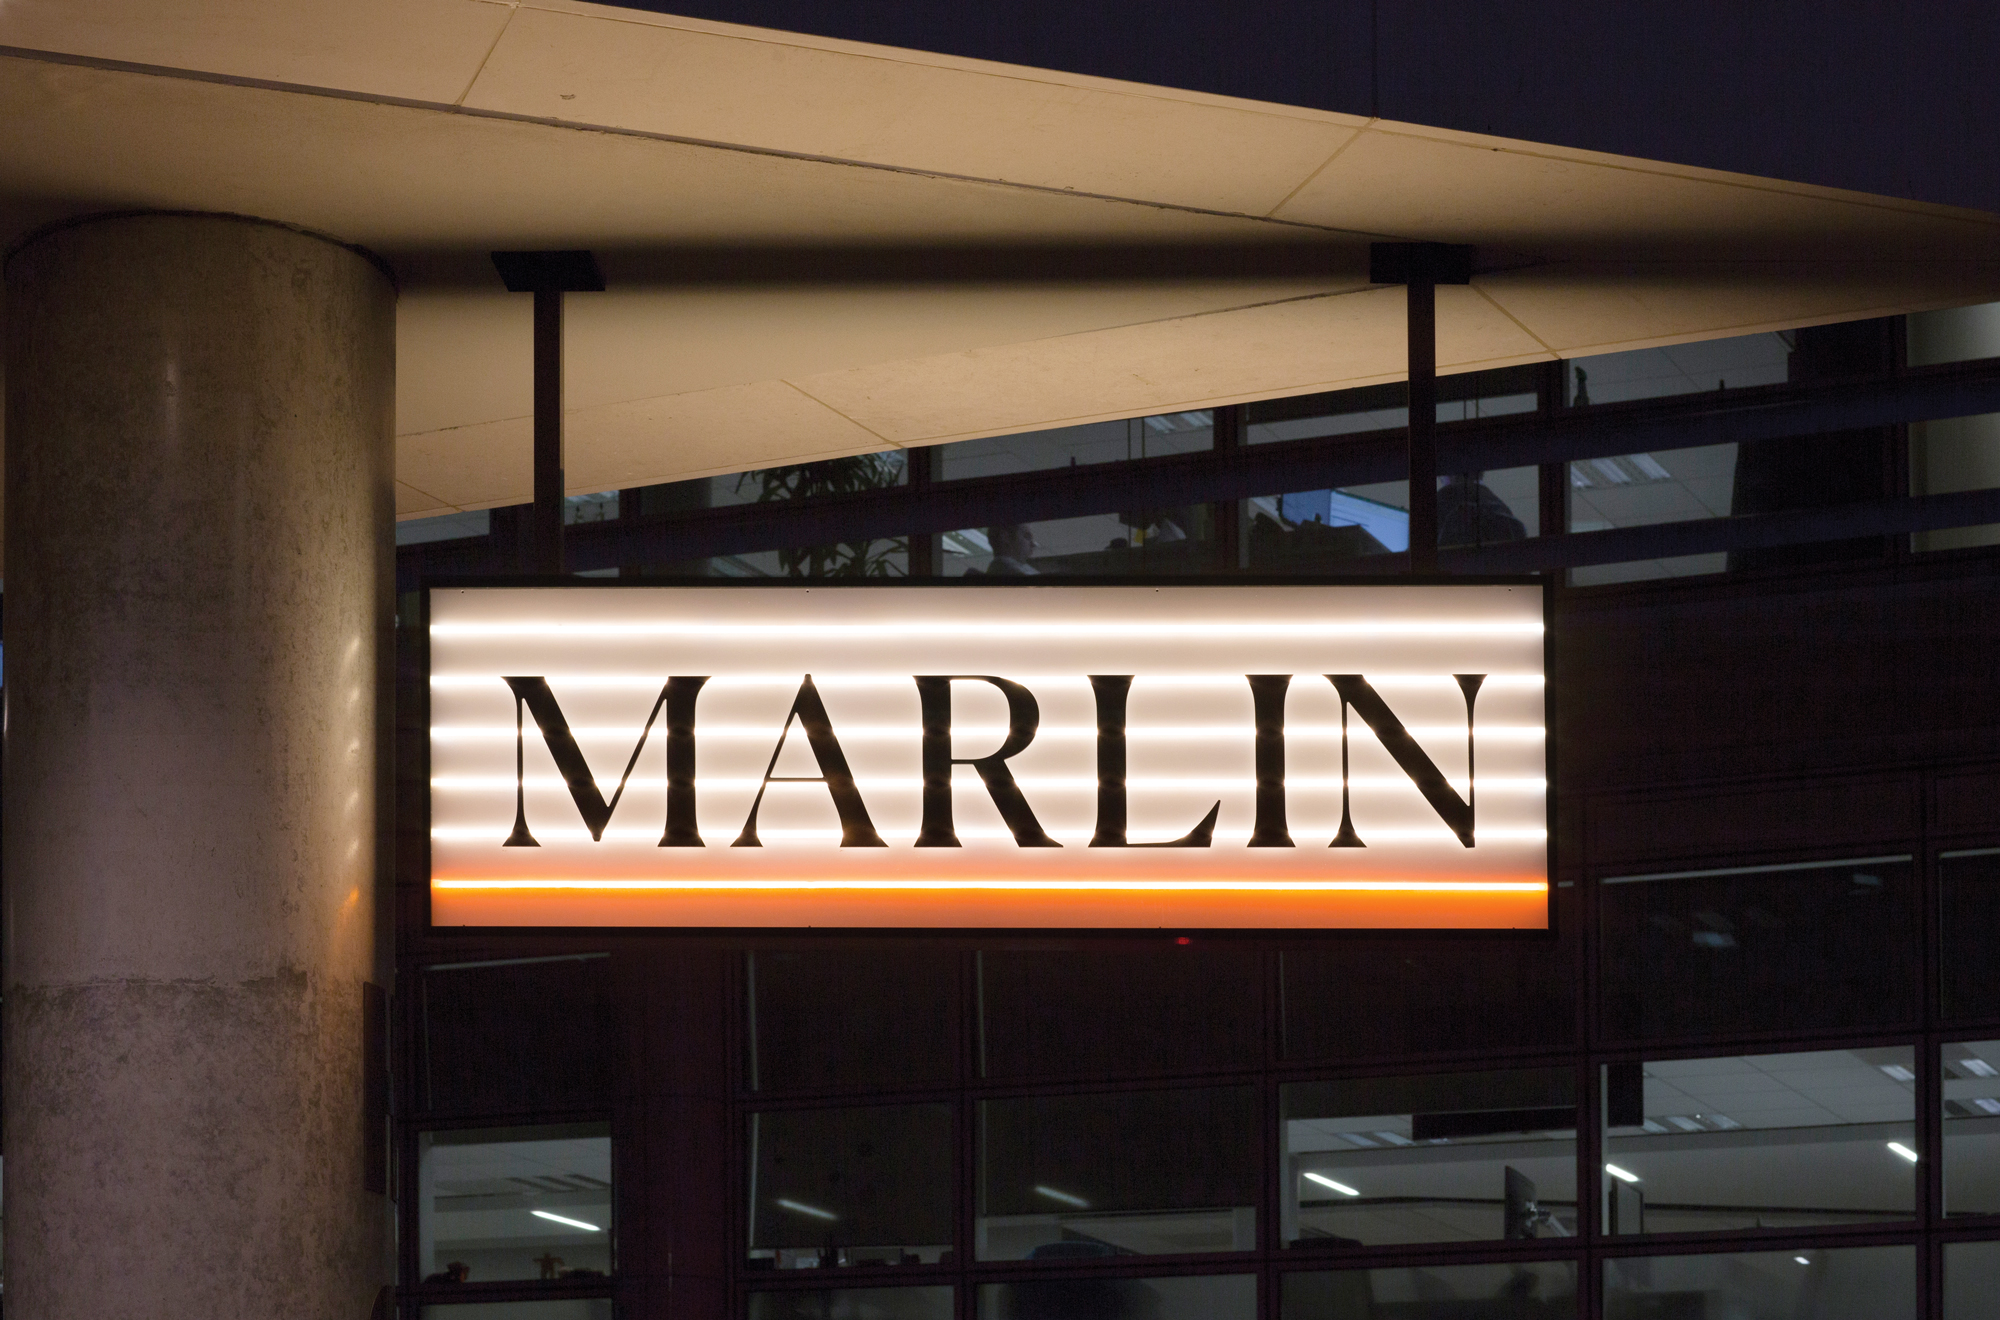 Cover image: Marlin Hotel